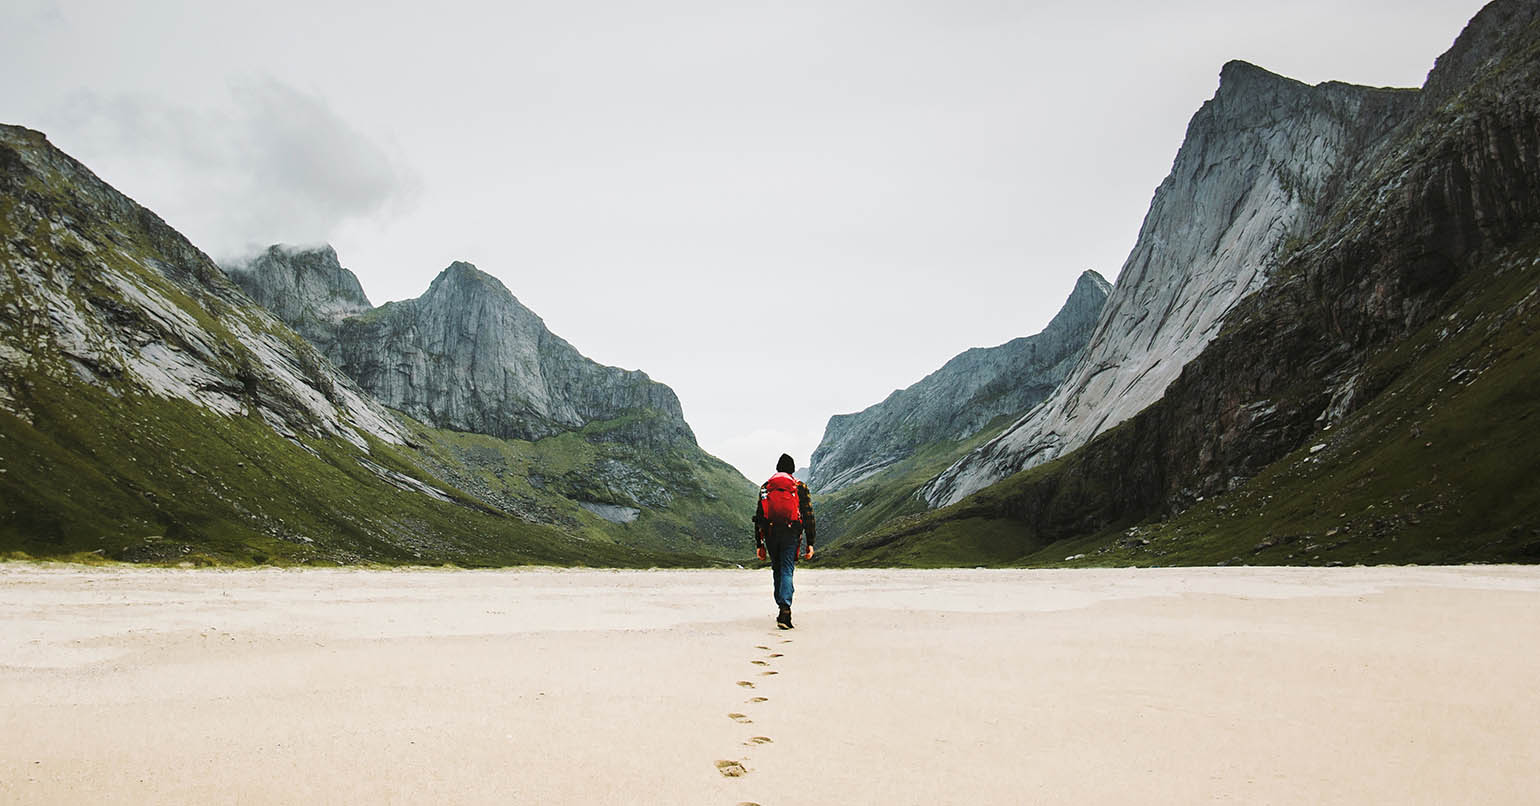 6 Basic Survival Skills to Learn for Life